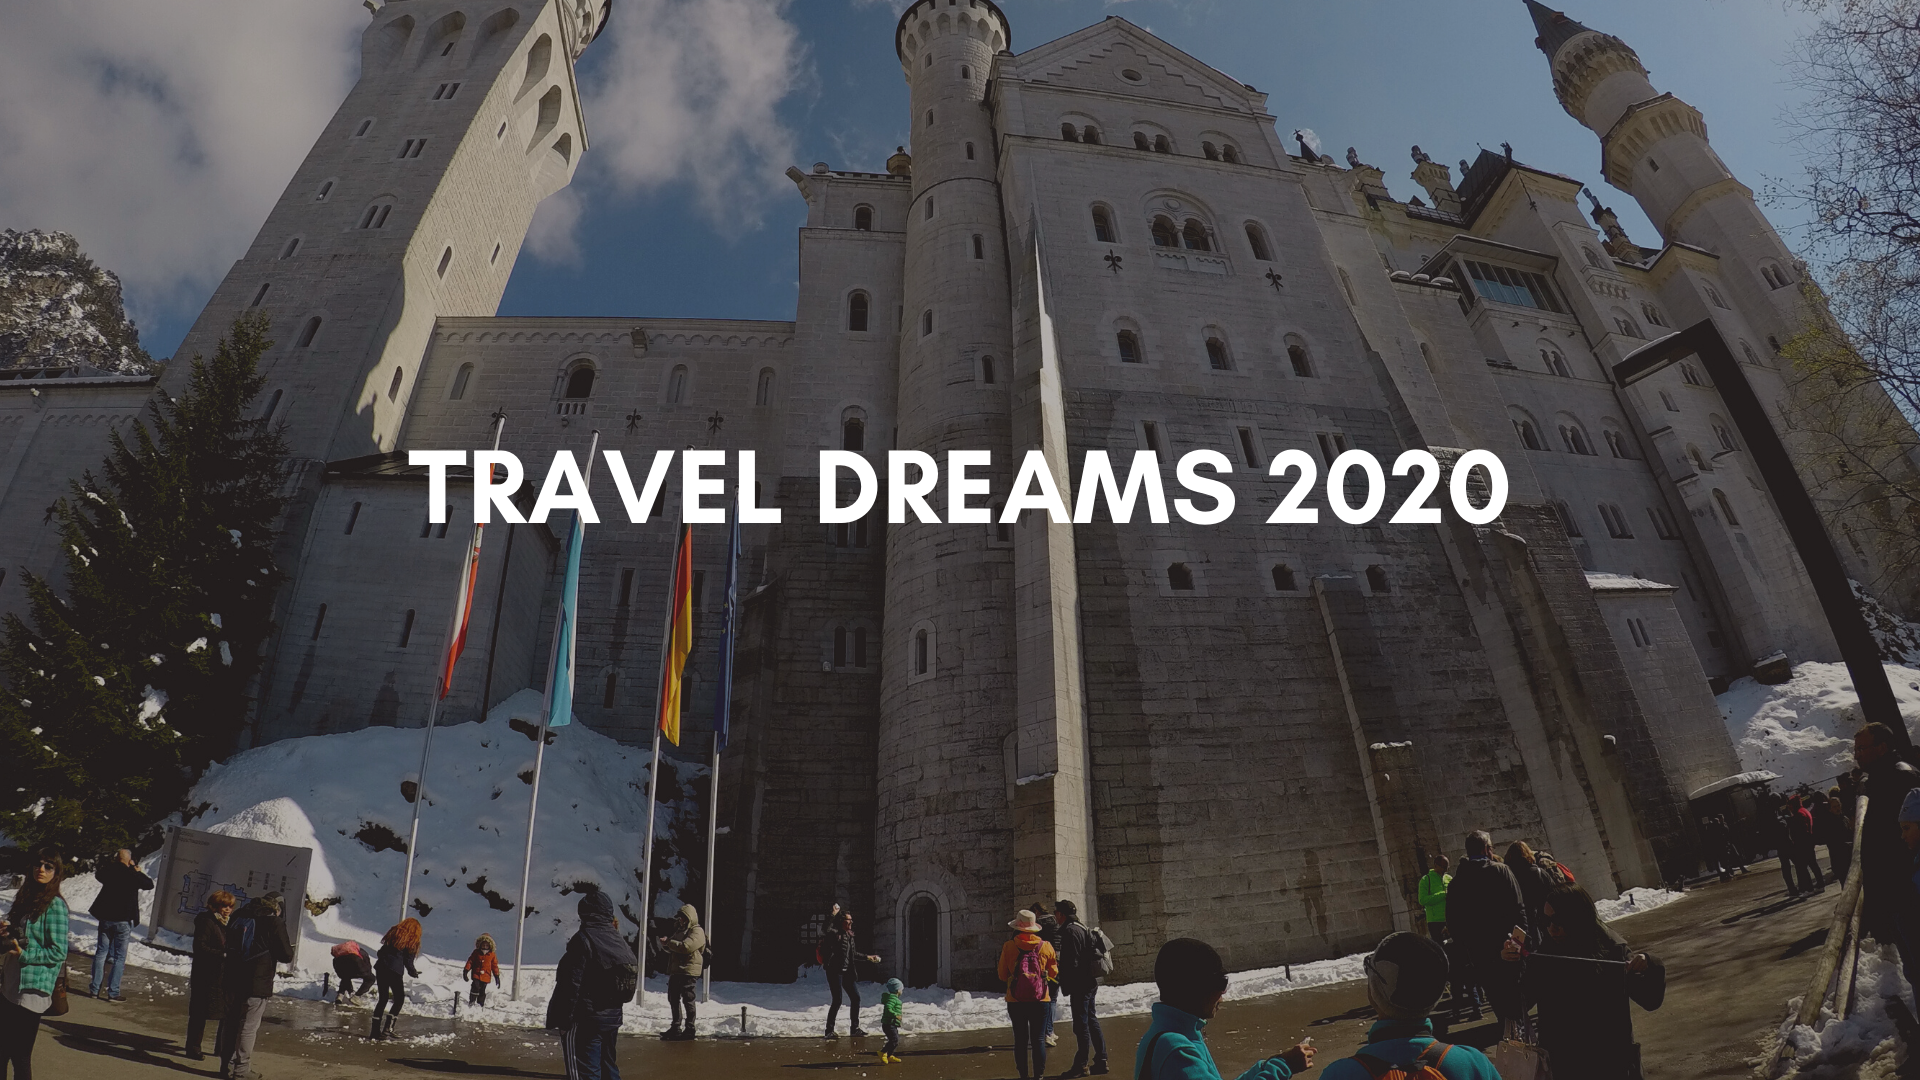 TRAVEL DREAMS 2020